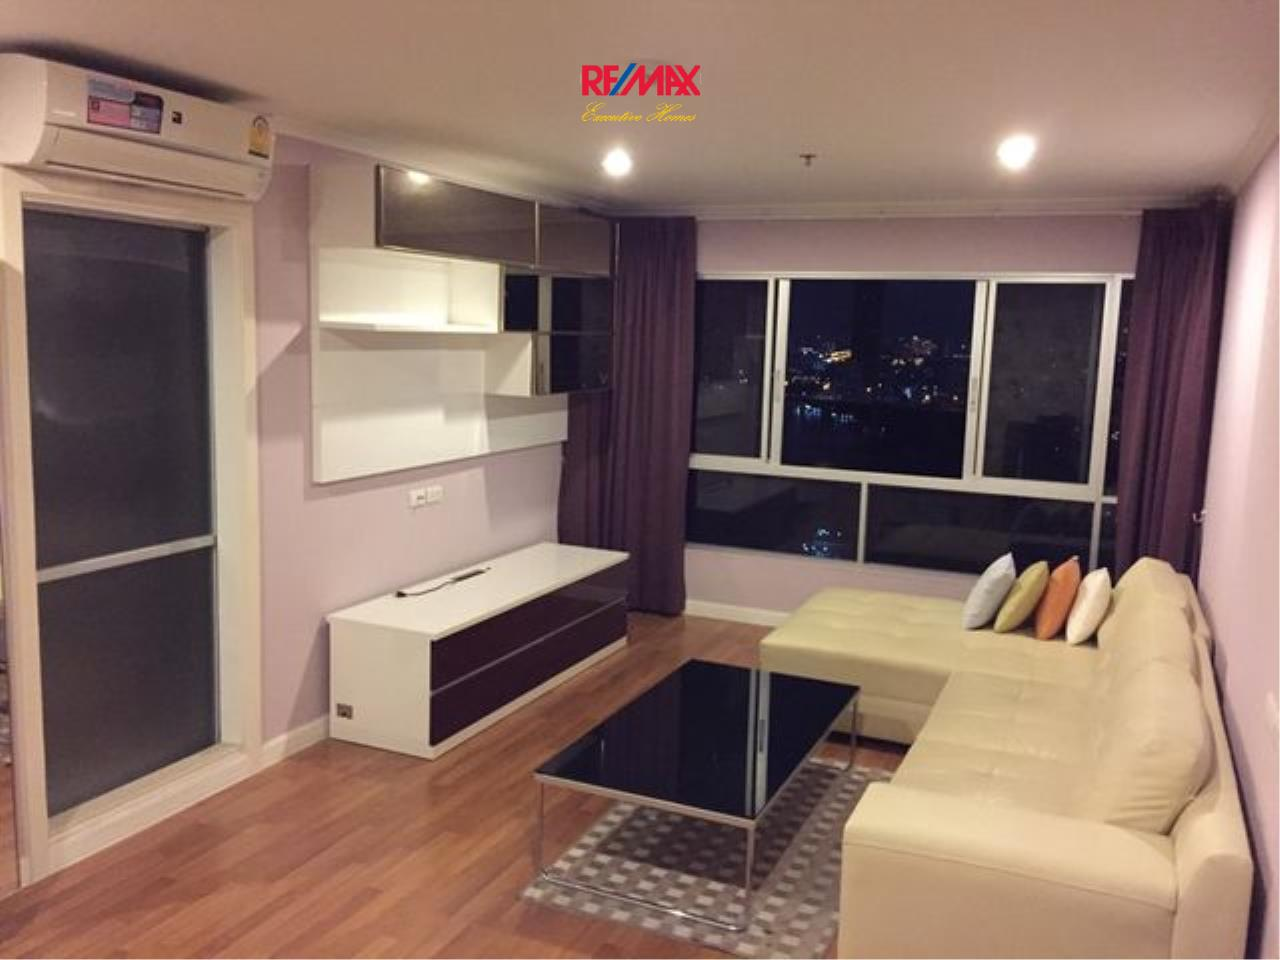 RE/MAX Executive Homes Agency's Cozy 2 Bedroom for Sale Lumpini Park Riverside Rama 3 1